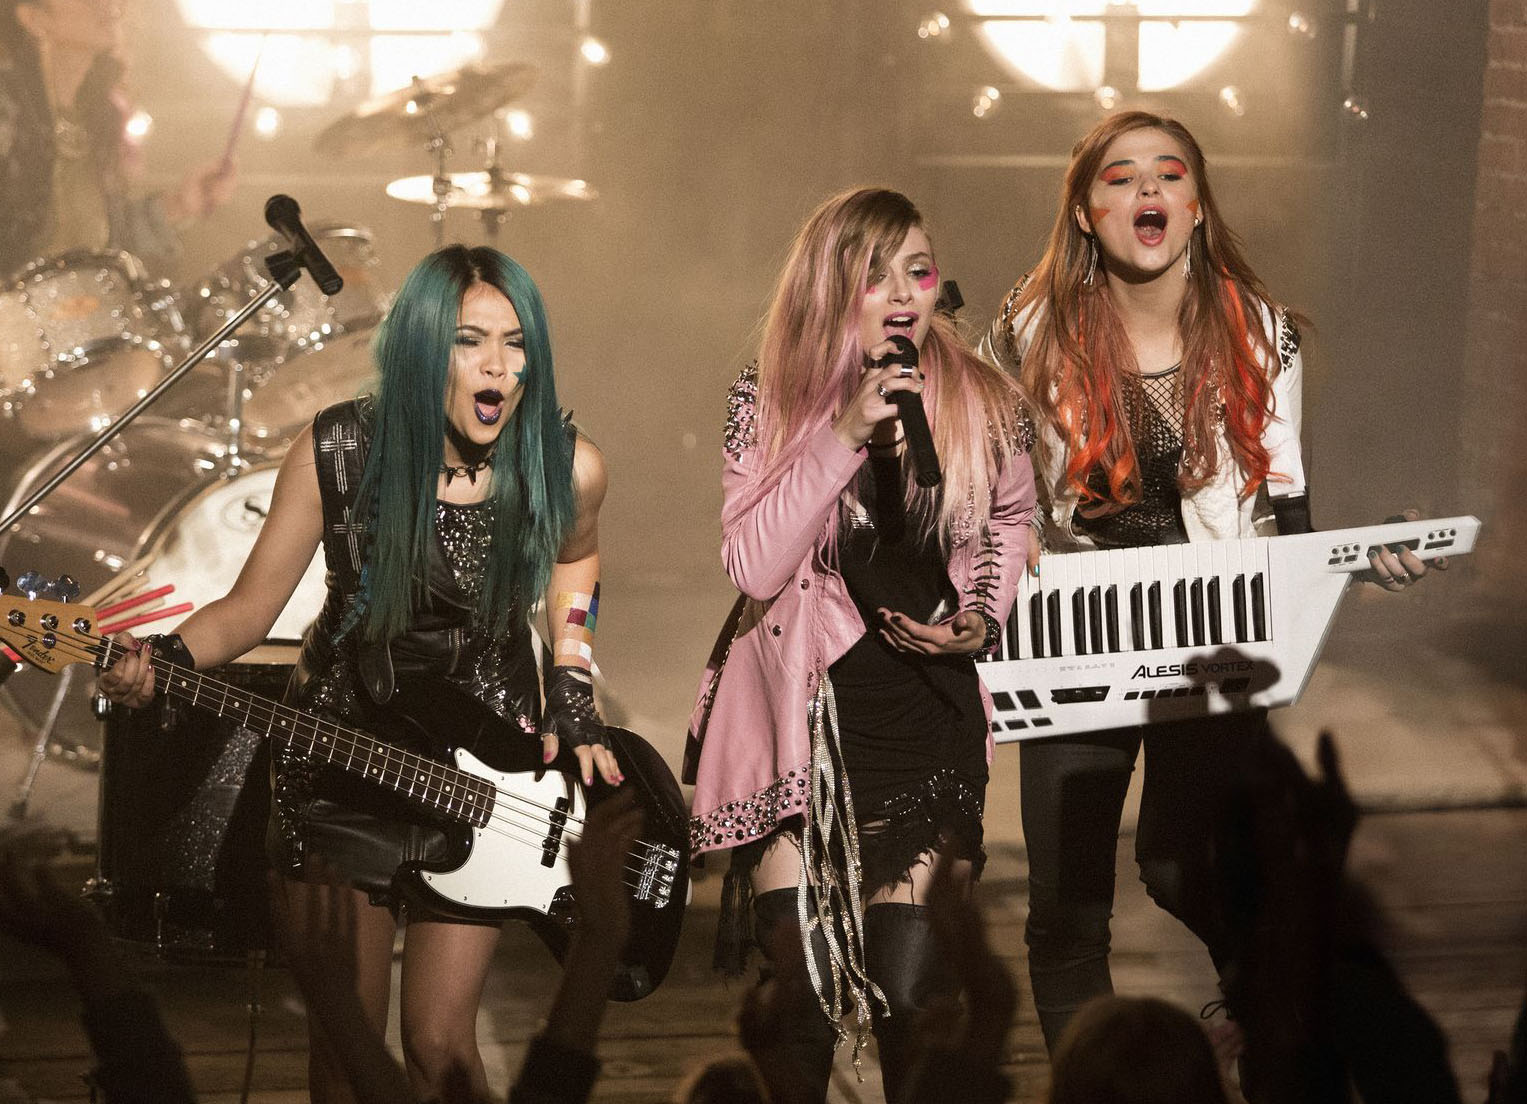 Stefanie Scott Explains Why Jem and the Holograms Fans Need to Be Patient